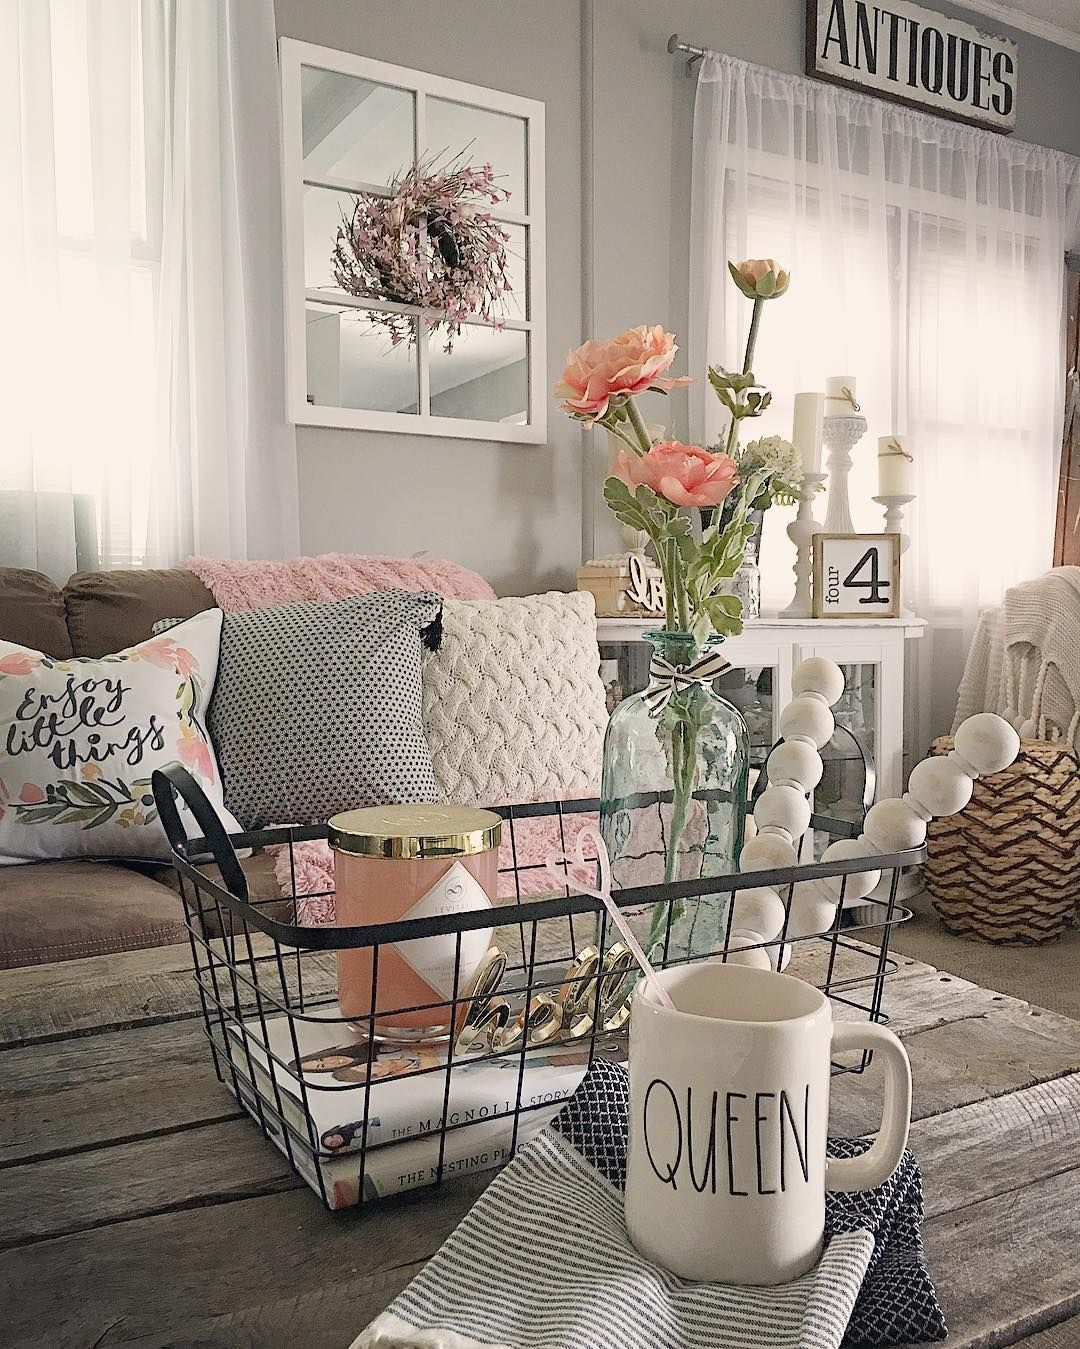 Shabby Chic Living Room Decorating Ideas Burgundy Color Schemes Pin By Erin Cellura On Country Home Pinterest Modern Farmhouse Cottage Decor Decorations Gray Coffee